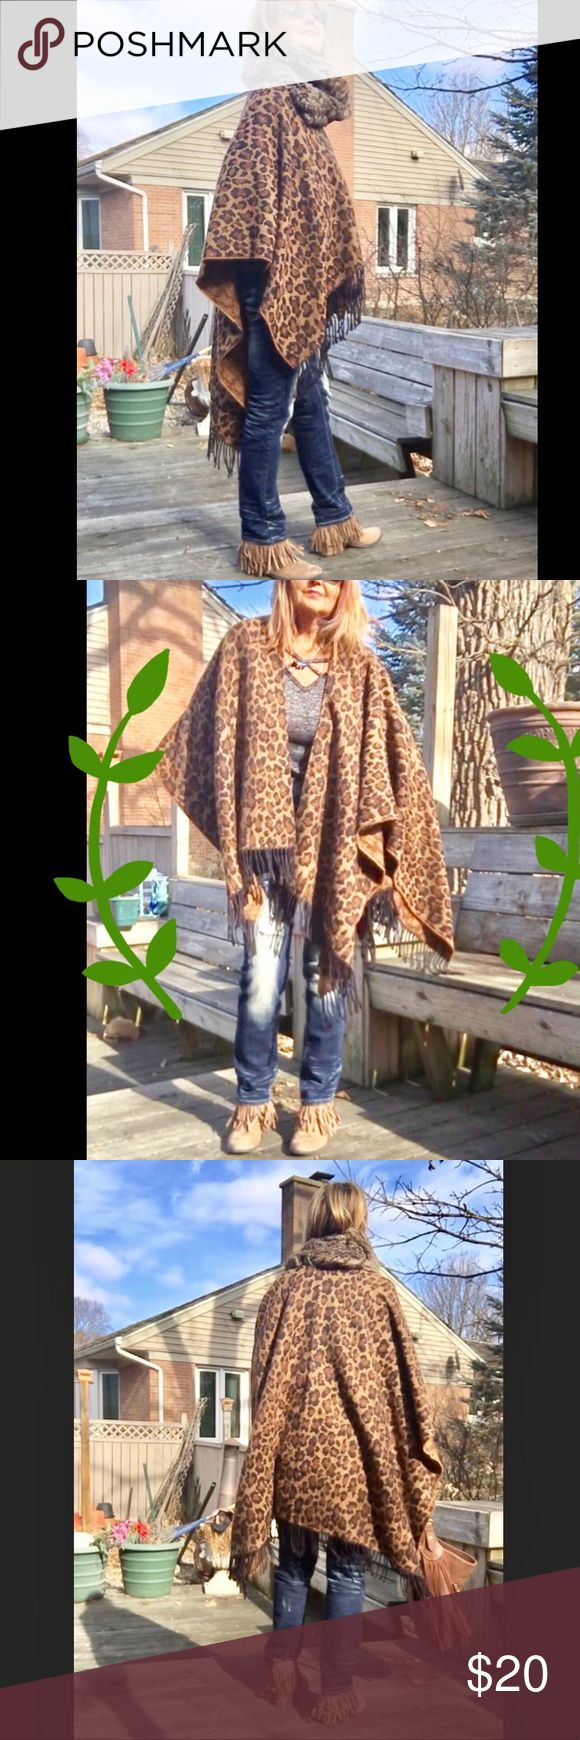 JAGUAR PRINT FRINGED SHAWL A warm, stylish, cover-up. Trendy jaguar print. Fur collar is listed separately for sale in my Closet. Croft & Barrow brand. Length is 64 inches long X 49 inches wide. Add 3 inches each side for length of fringe. Pre-worn about 3 times. Croft & Barrow Sweaters Shrugs & Ponchos